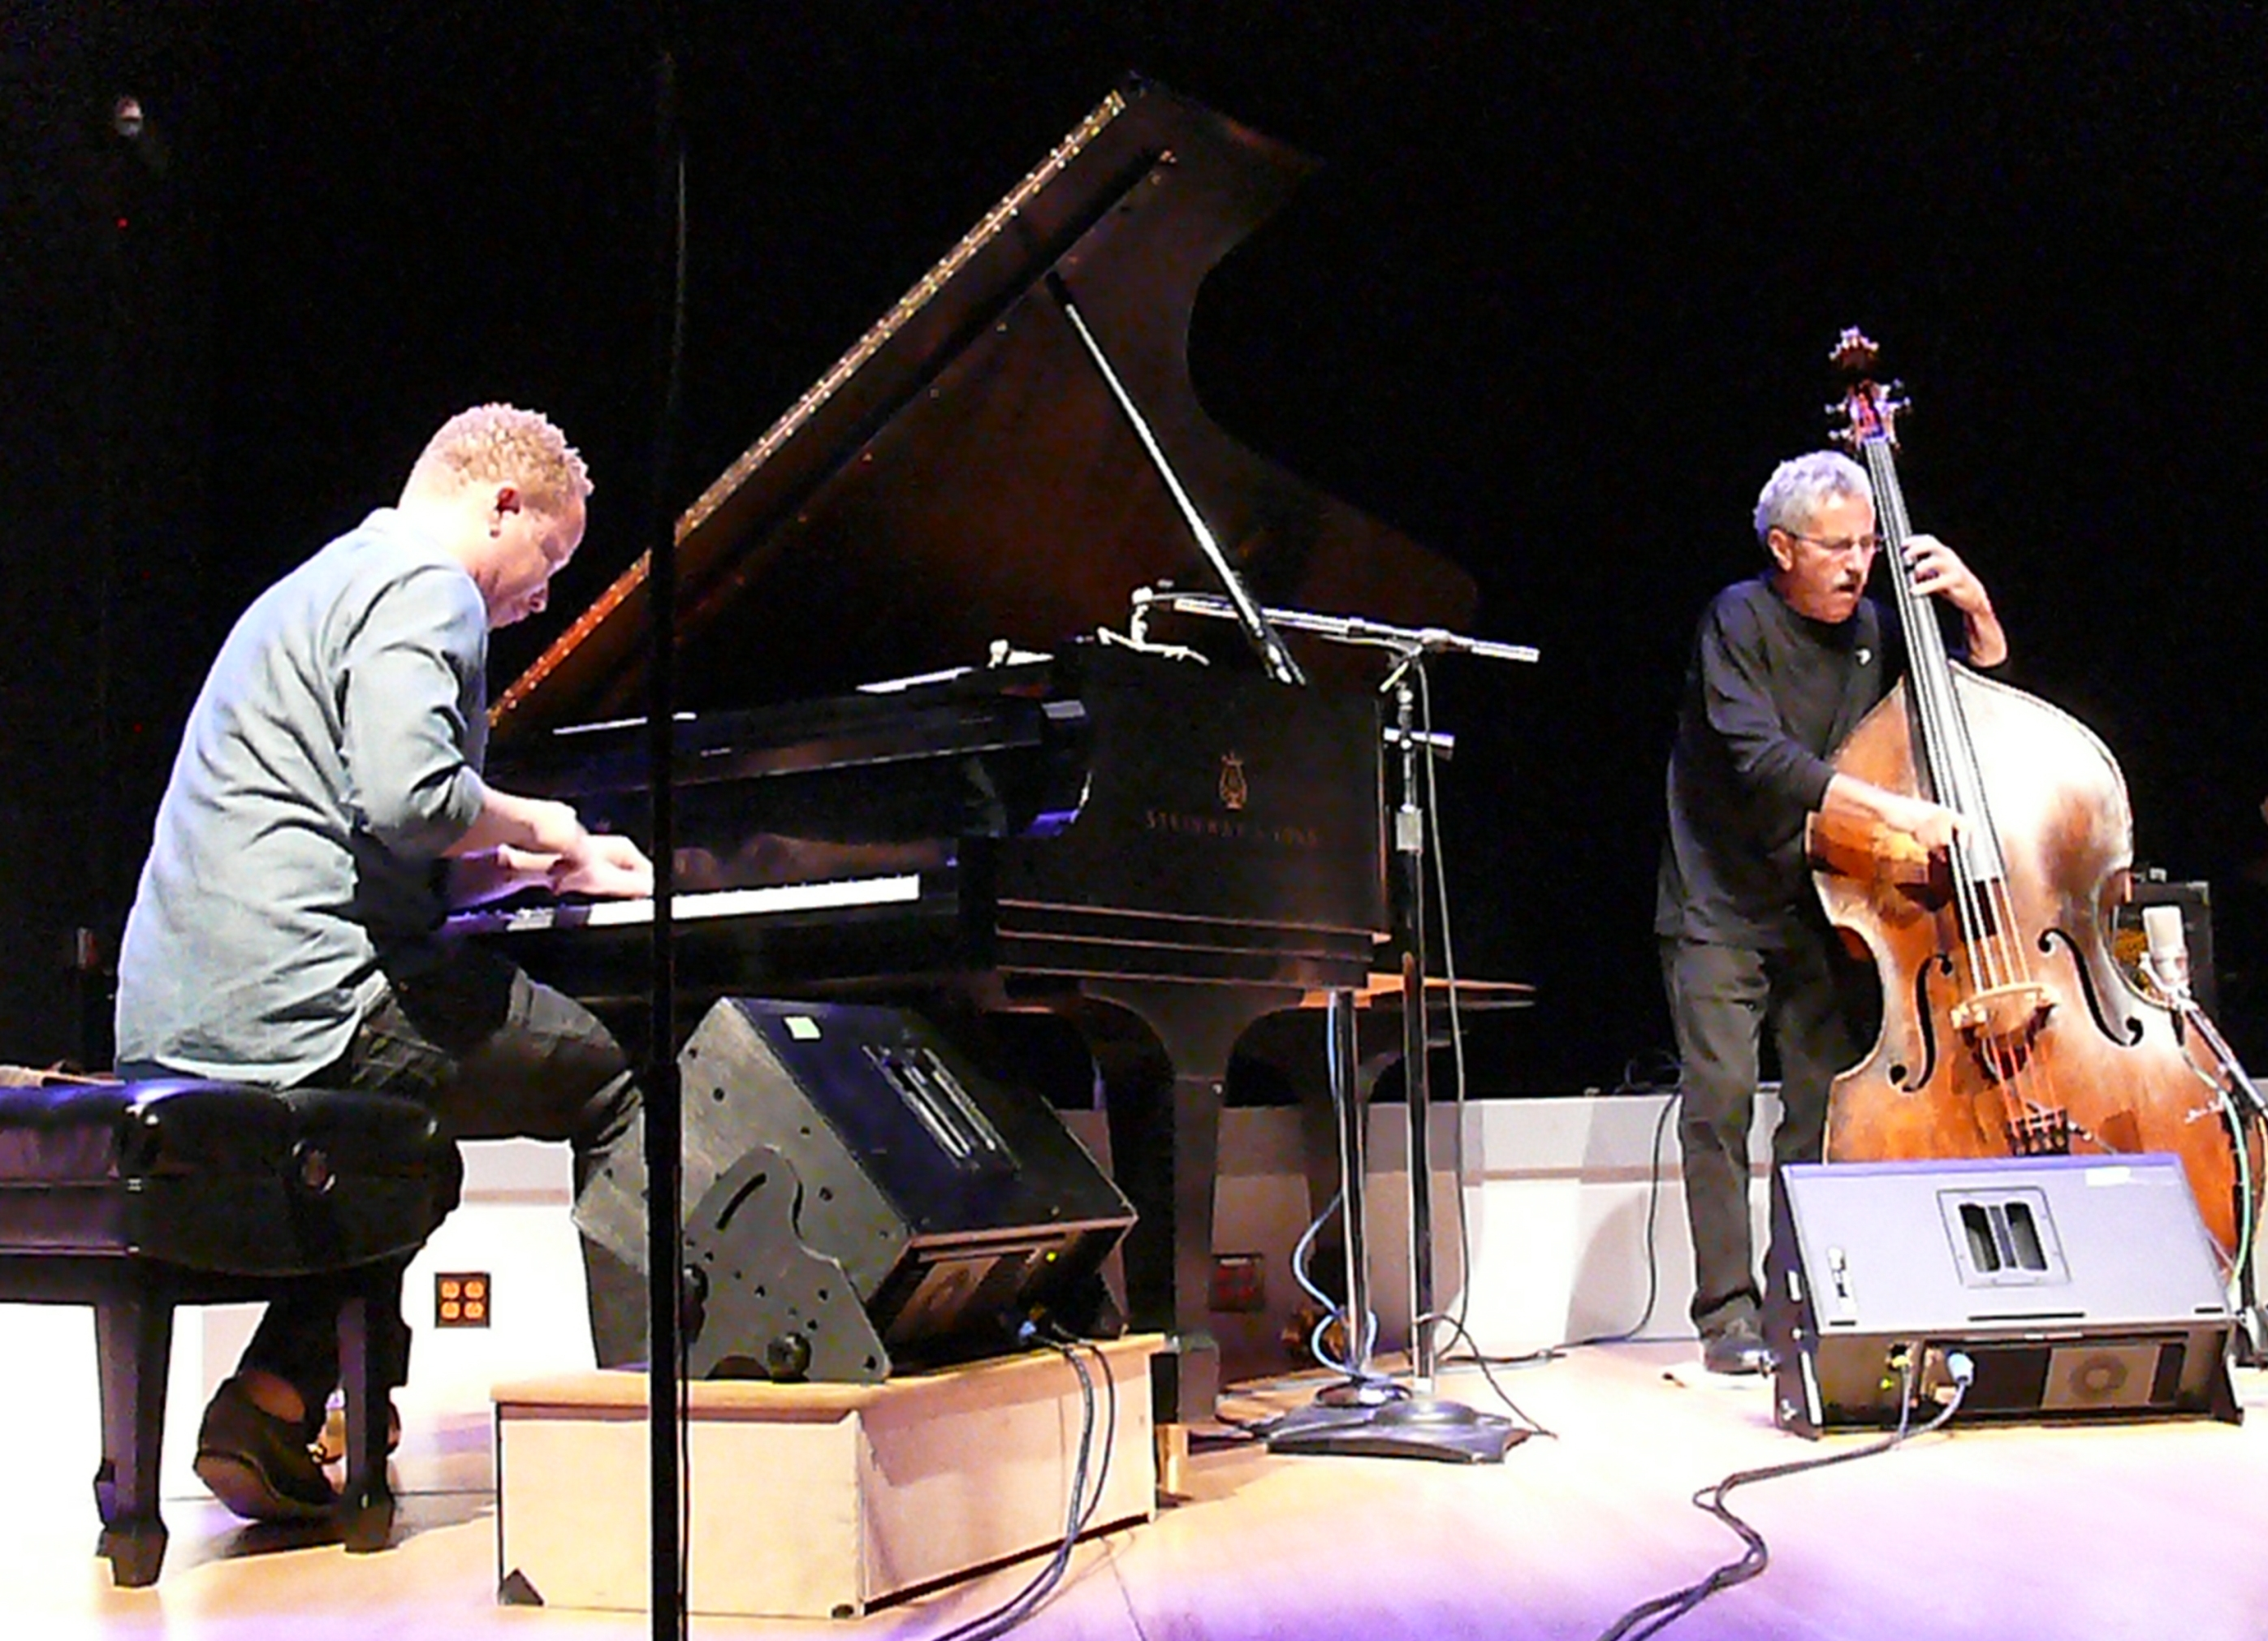 Craig taborn and mario pavone at the vision festival, new york in june 2013